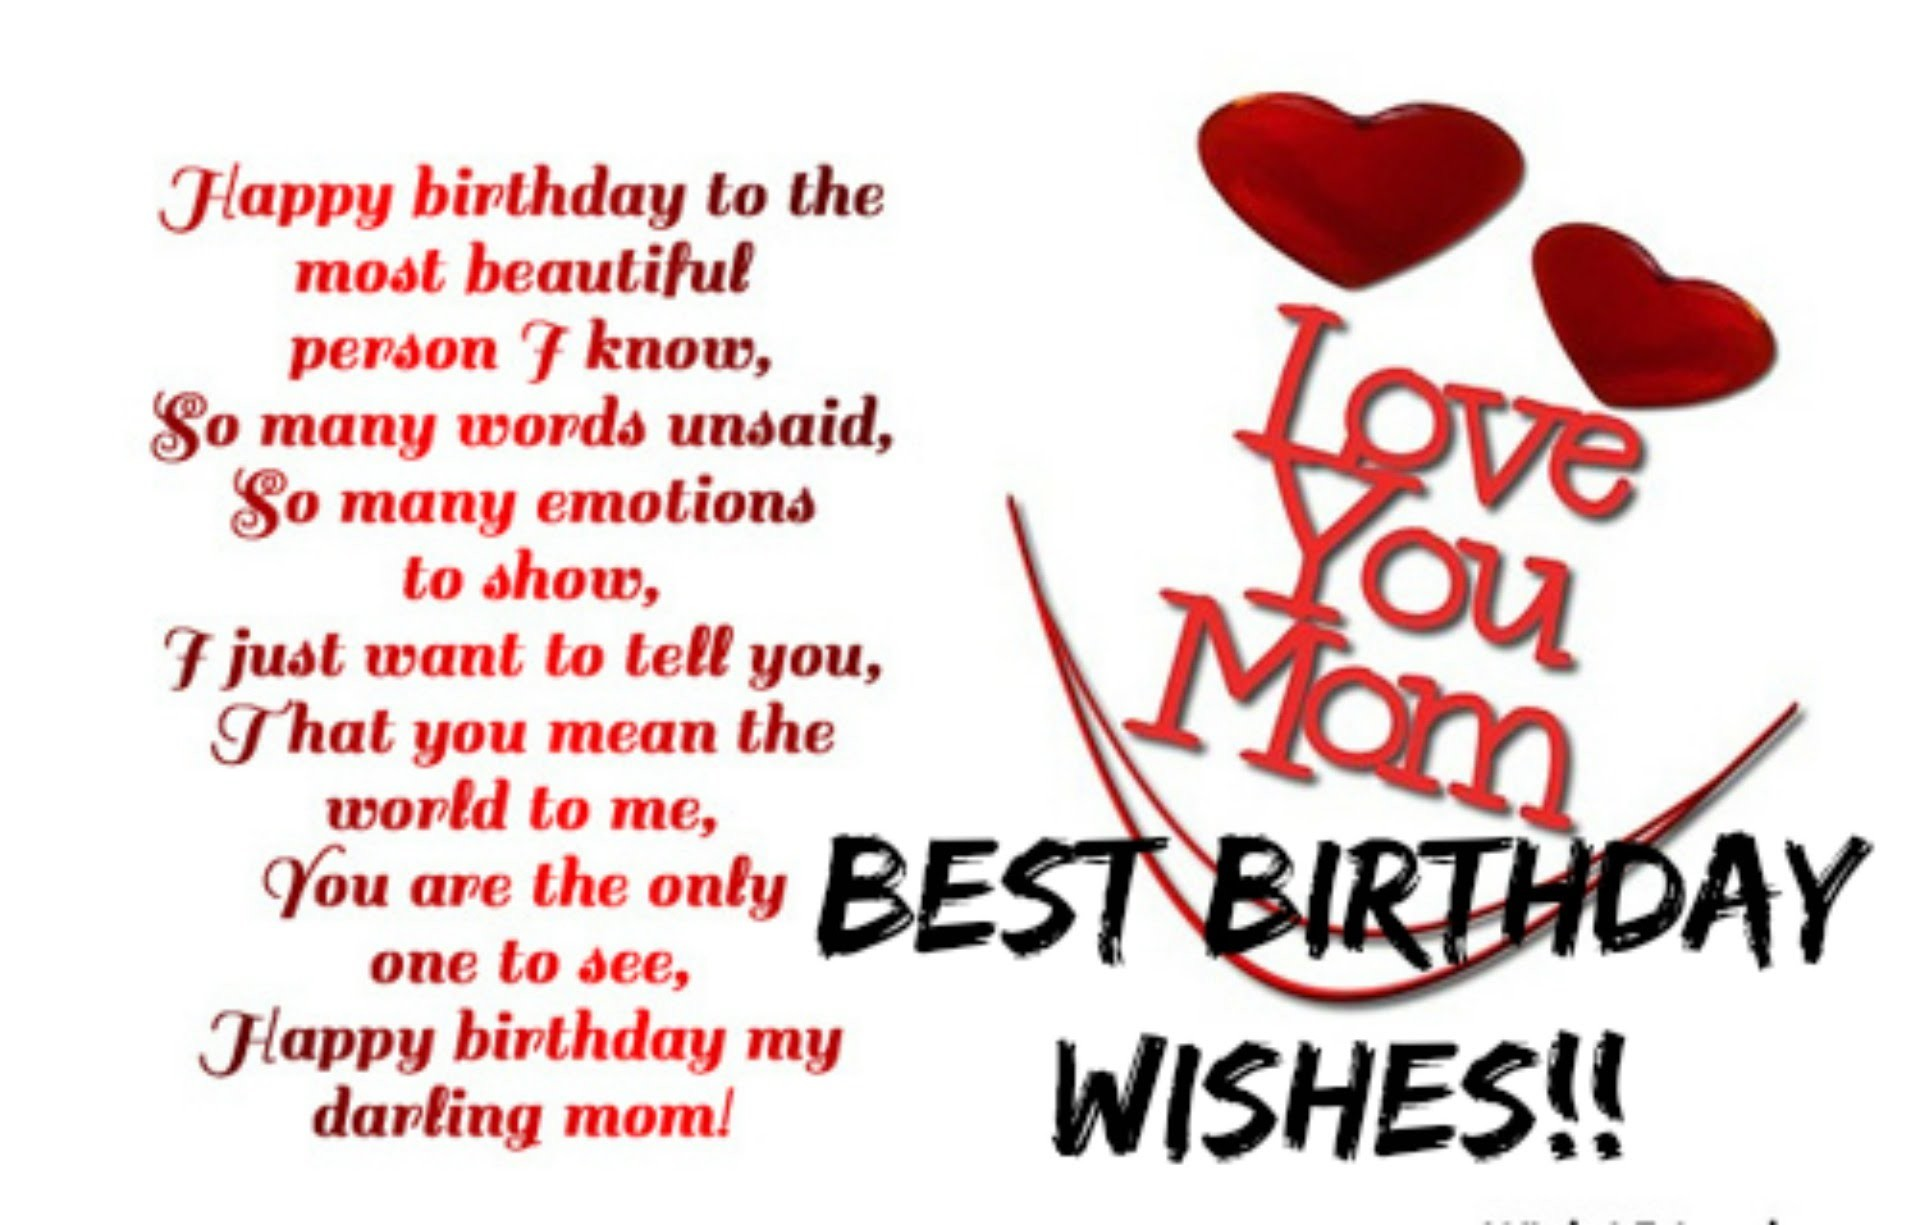 Best birthday wishes for mother HD wallpaper